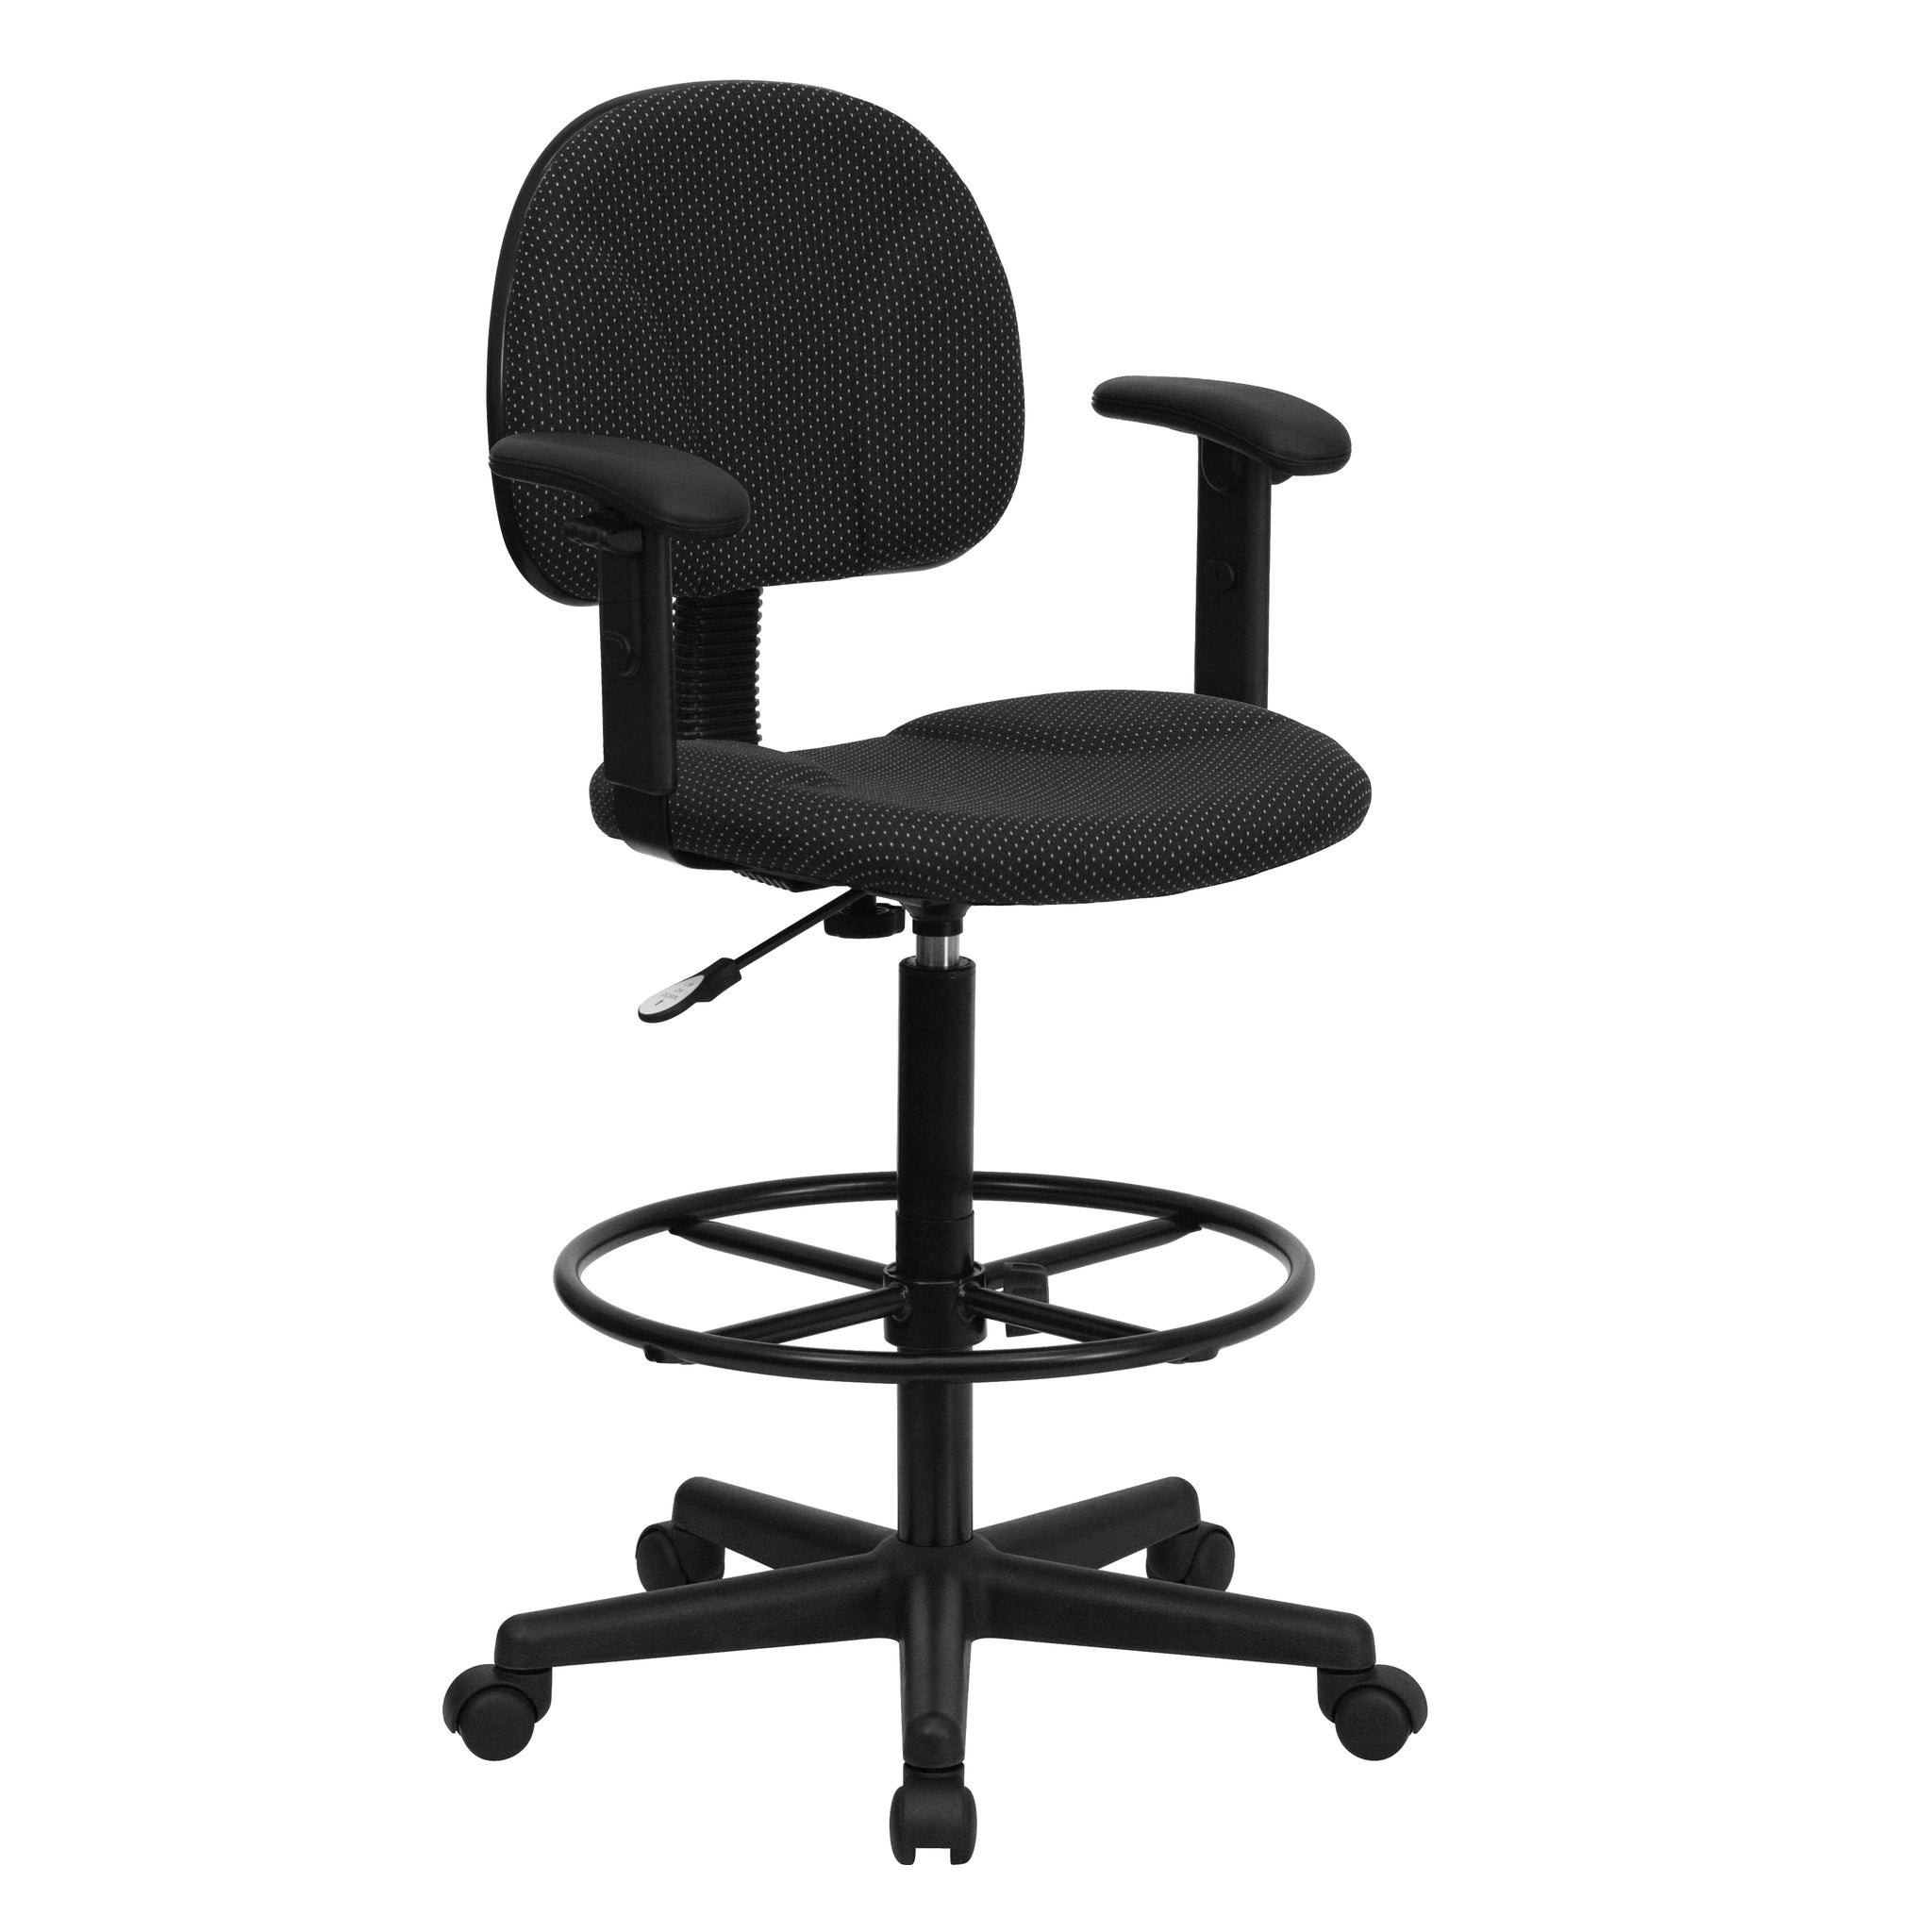 Fabric Ergonomic Drafting Chair with Height Adjustable Arms (Adjustable Range 22.5''-27''H or 26''-30.5''H): Black Patterned